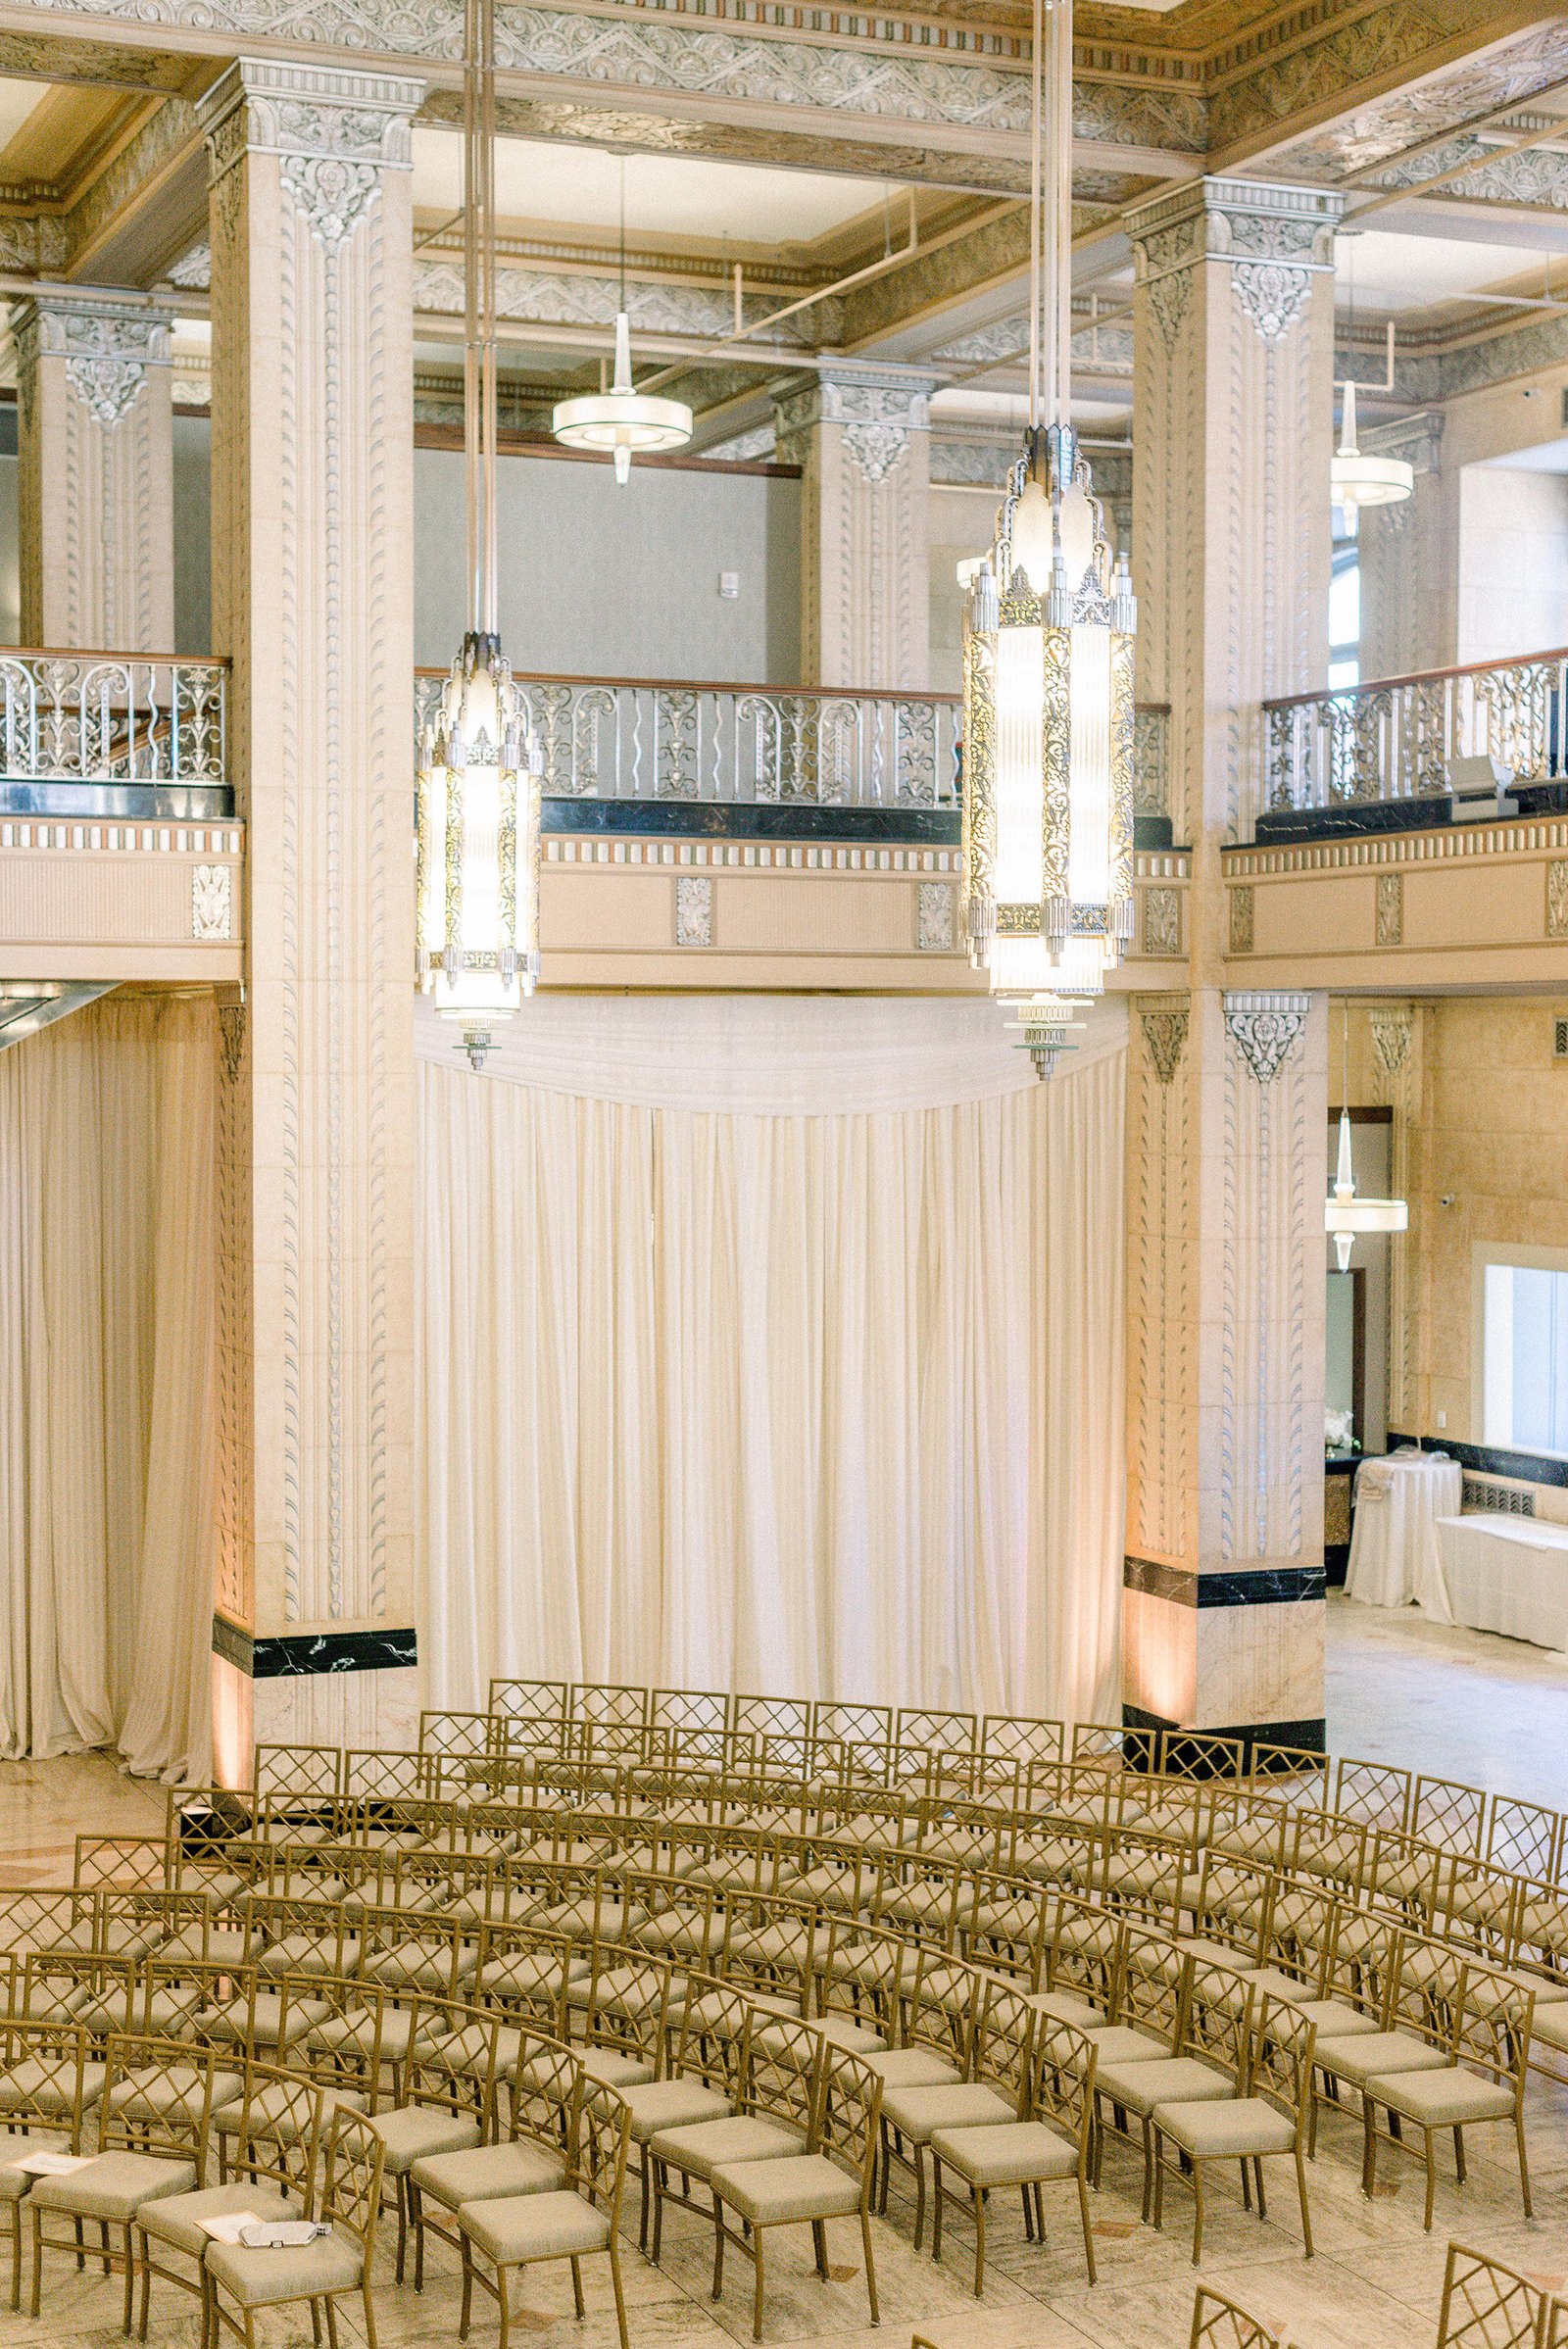 Pura-Soul-Photo-Moye-Kansas-City-Wedding-Digital-29